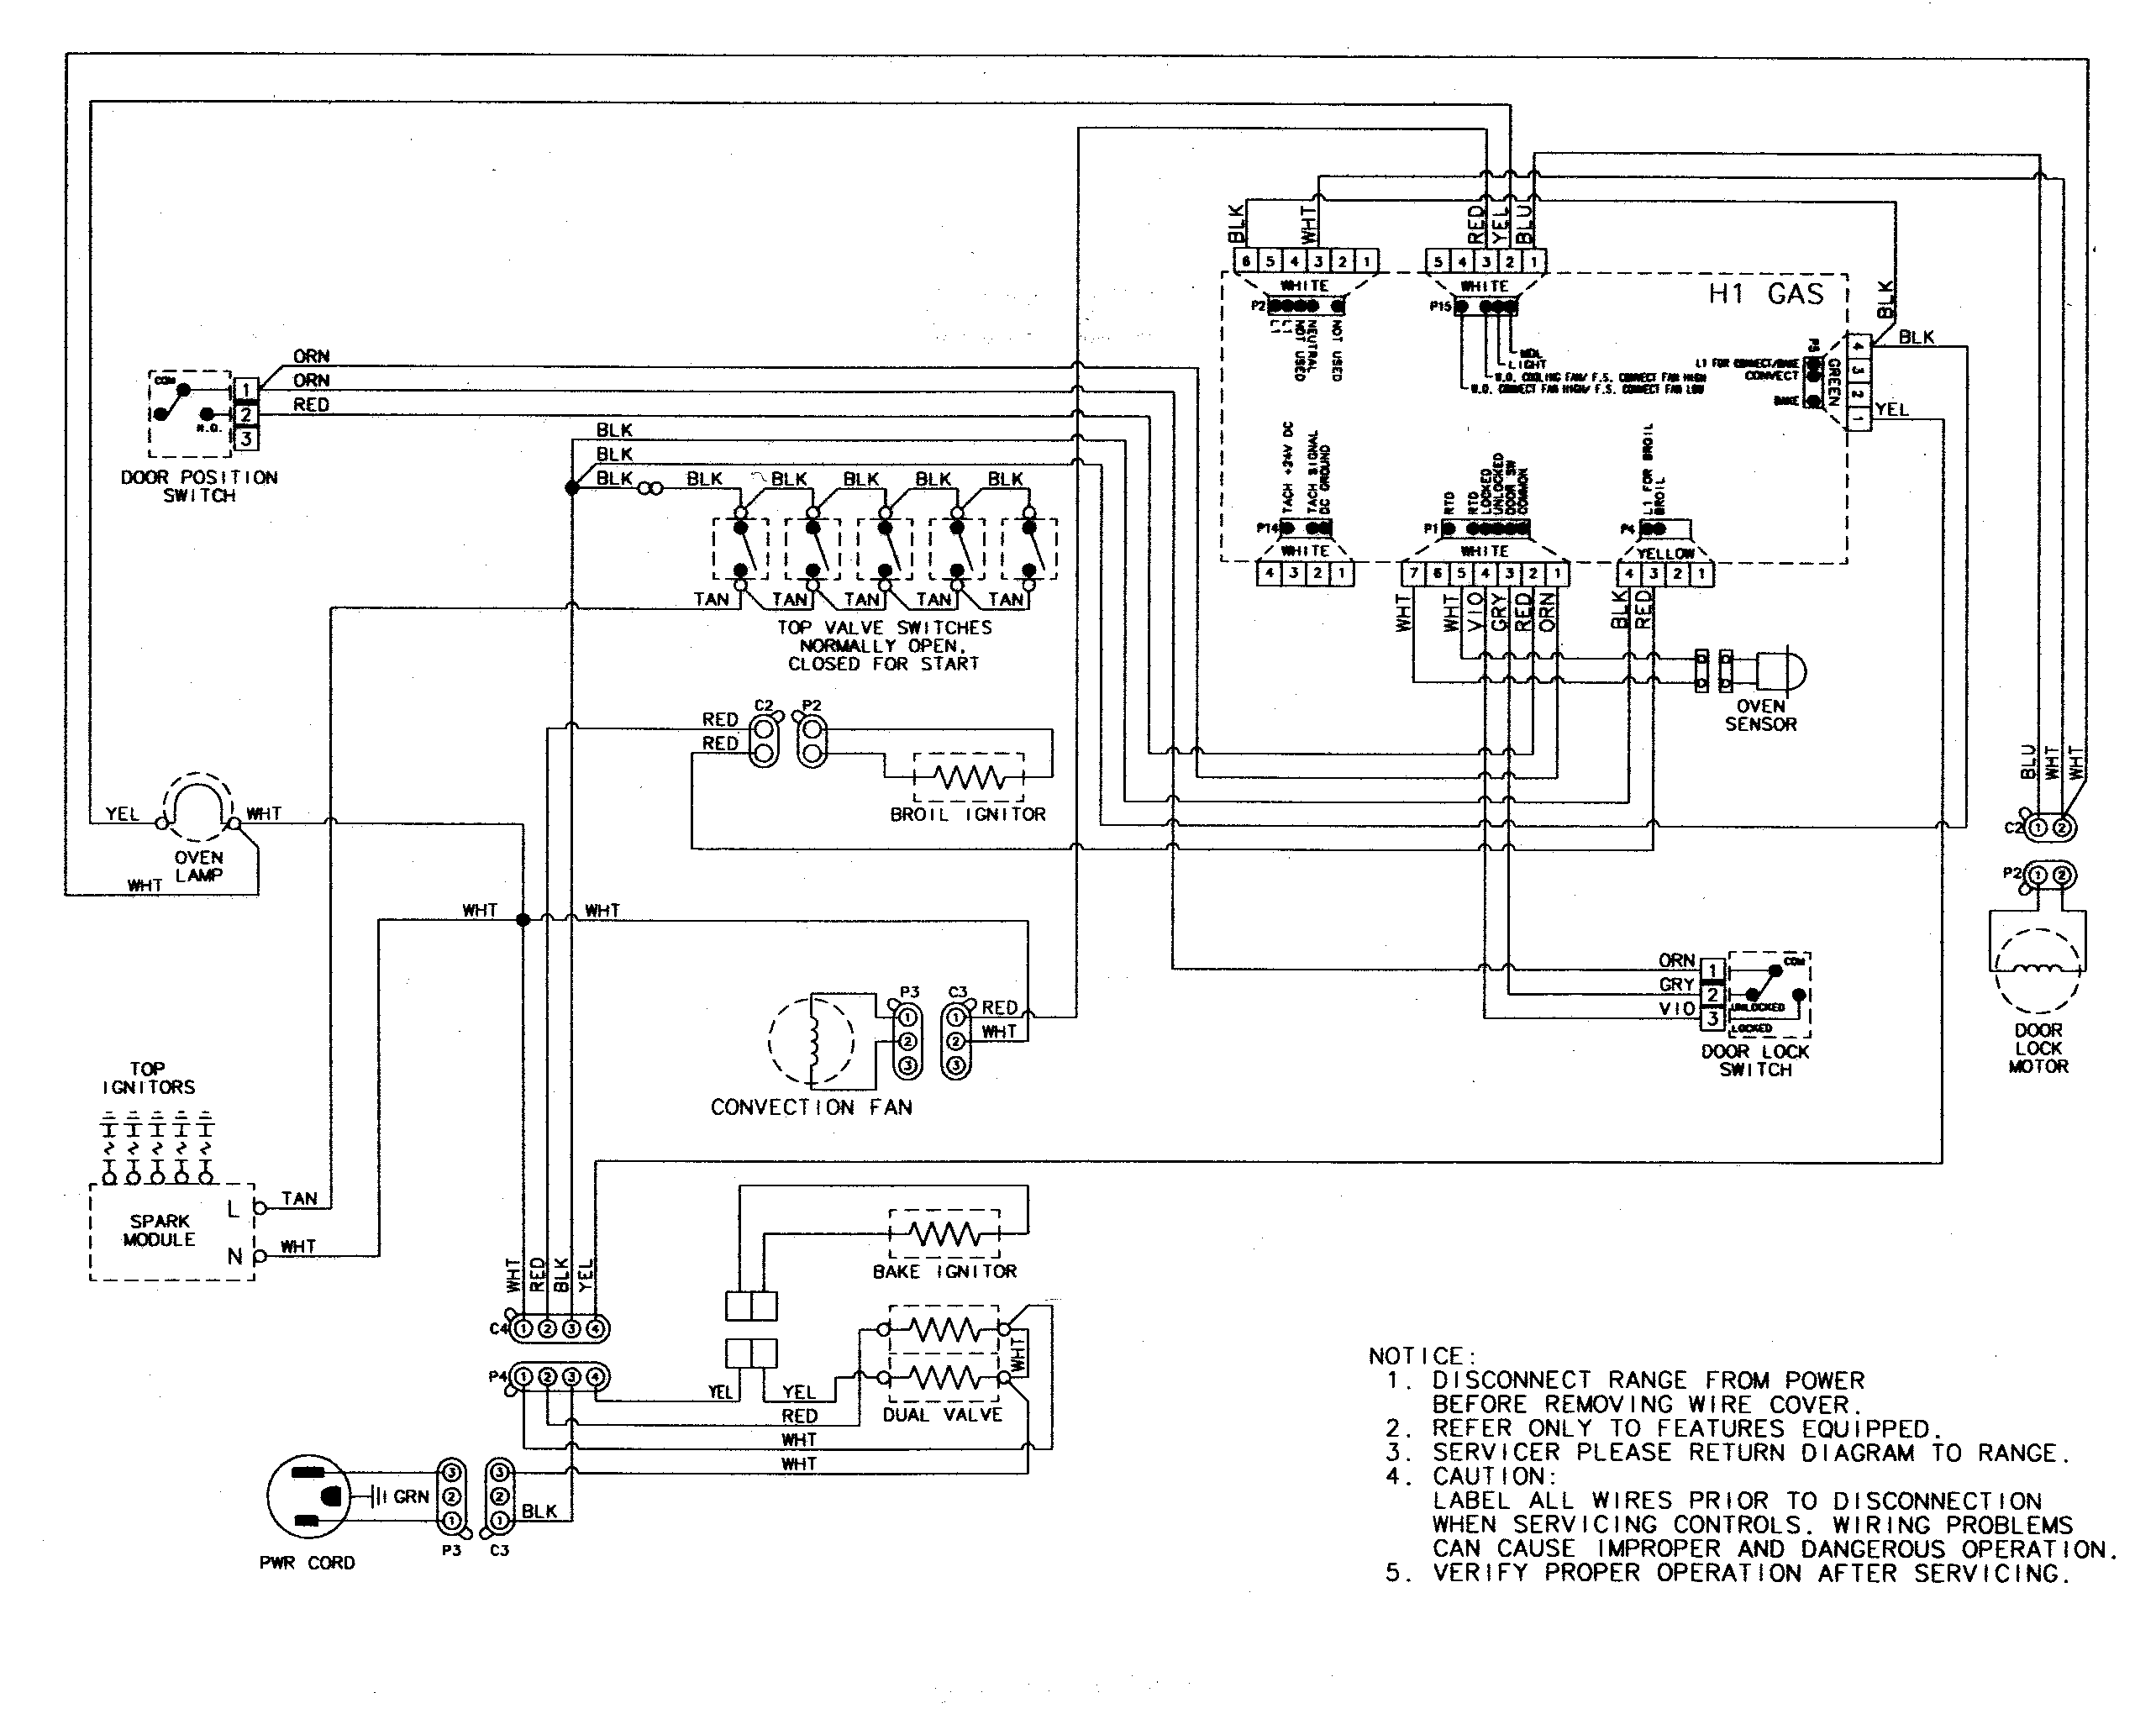 Appliance on Heat Pump Thermostat Wiring Diagrams